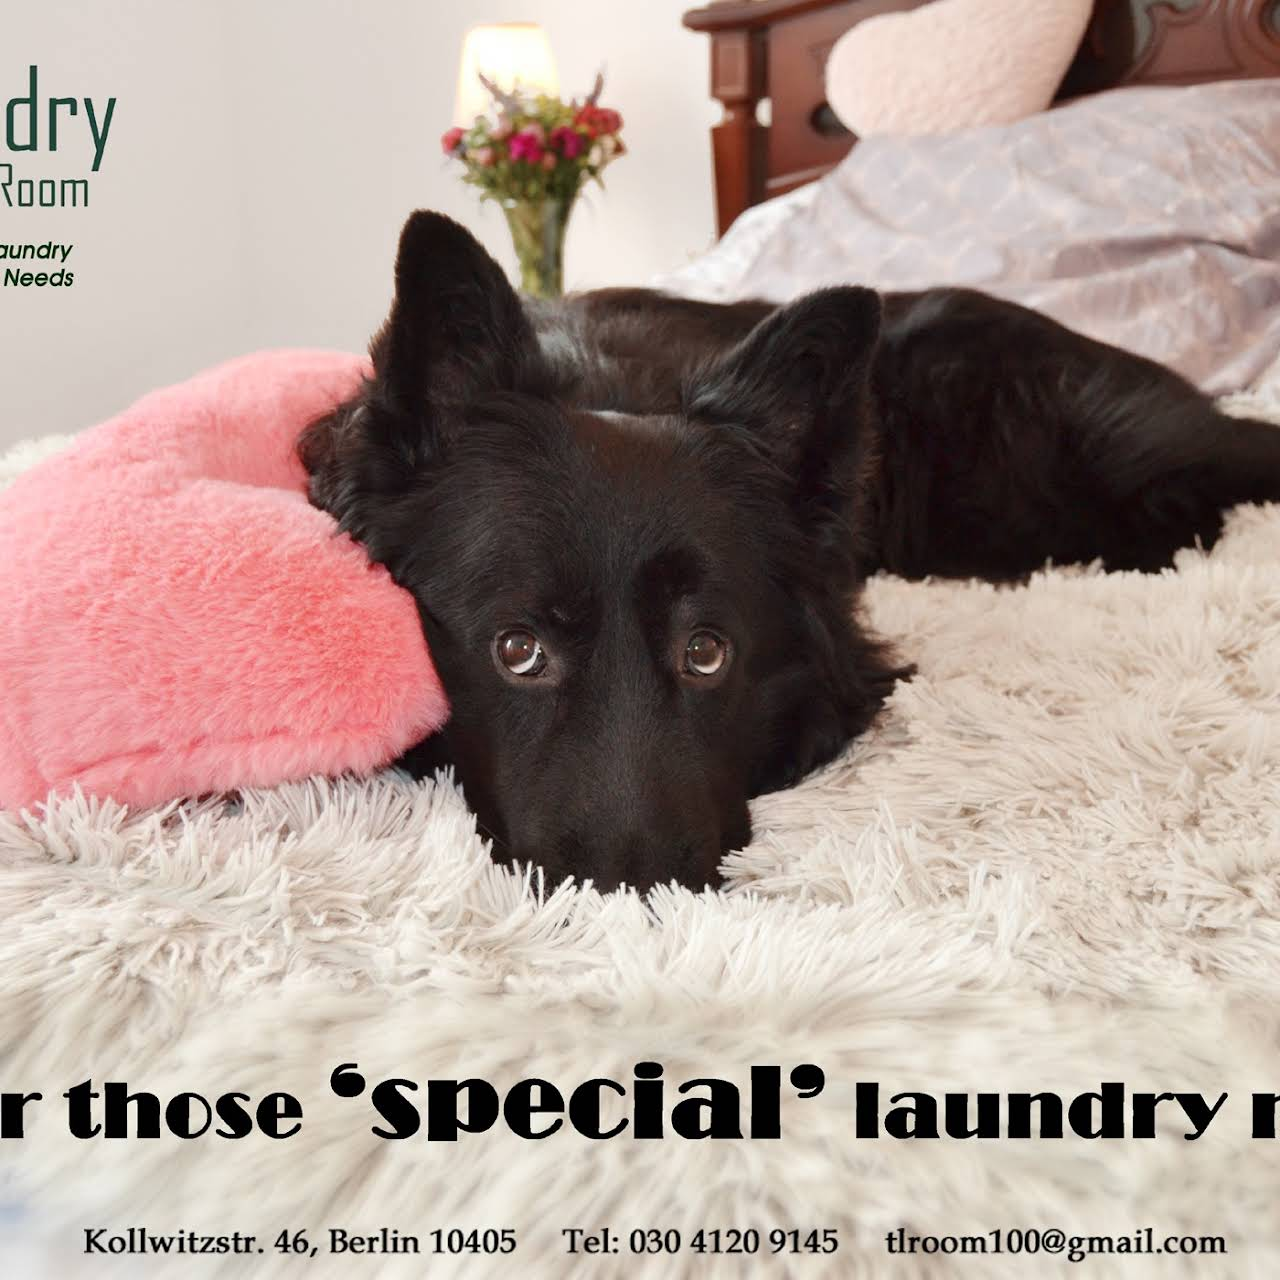 - The Laundry Room - Laundry Service In Berlin